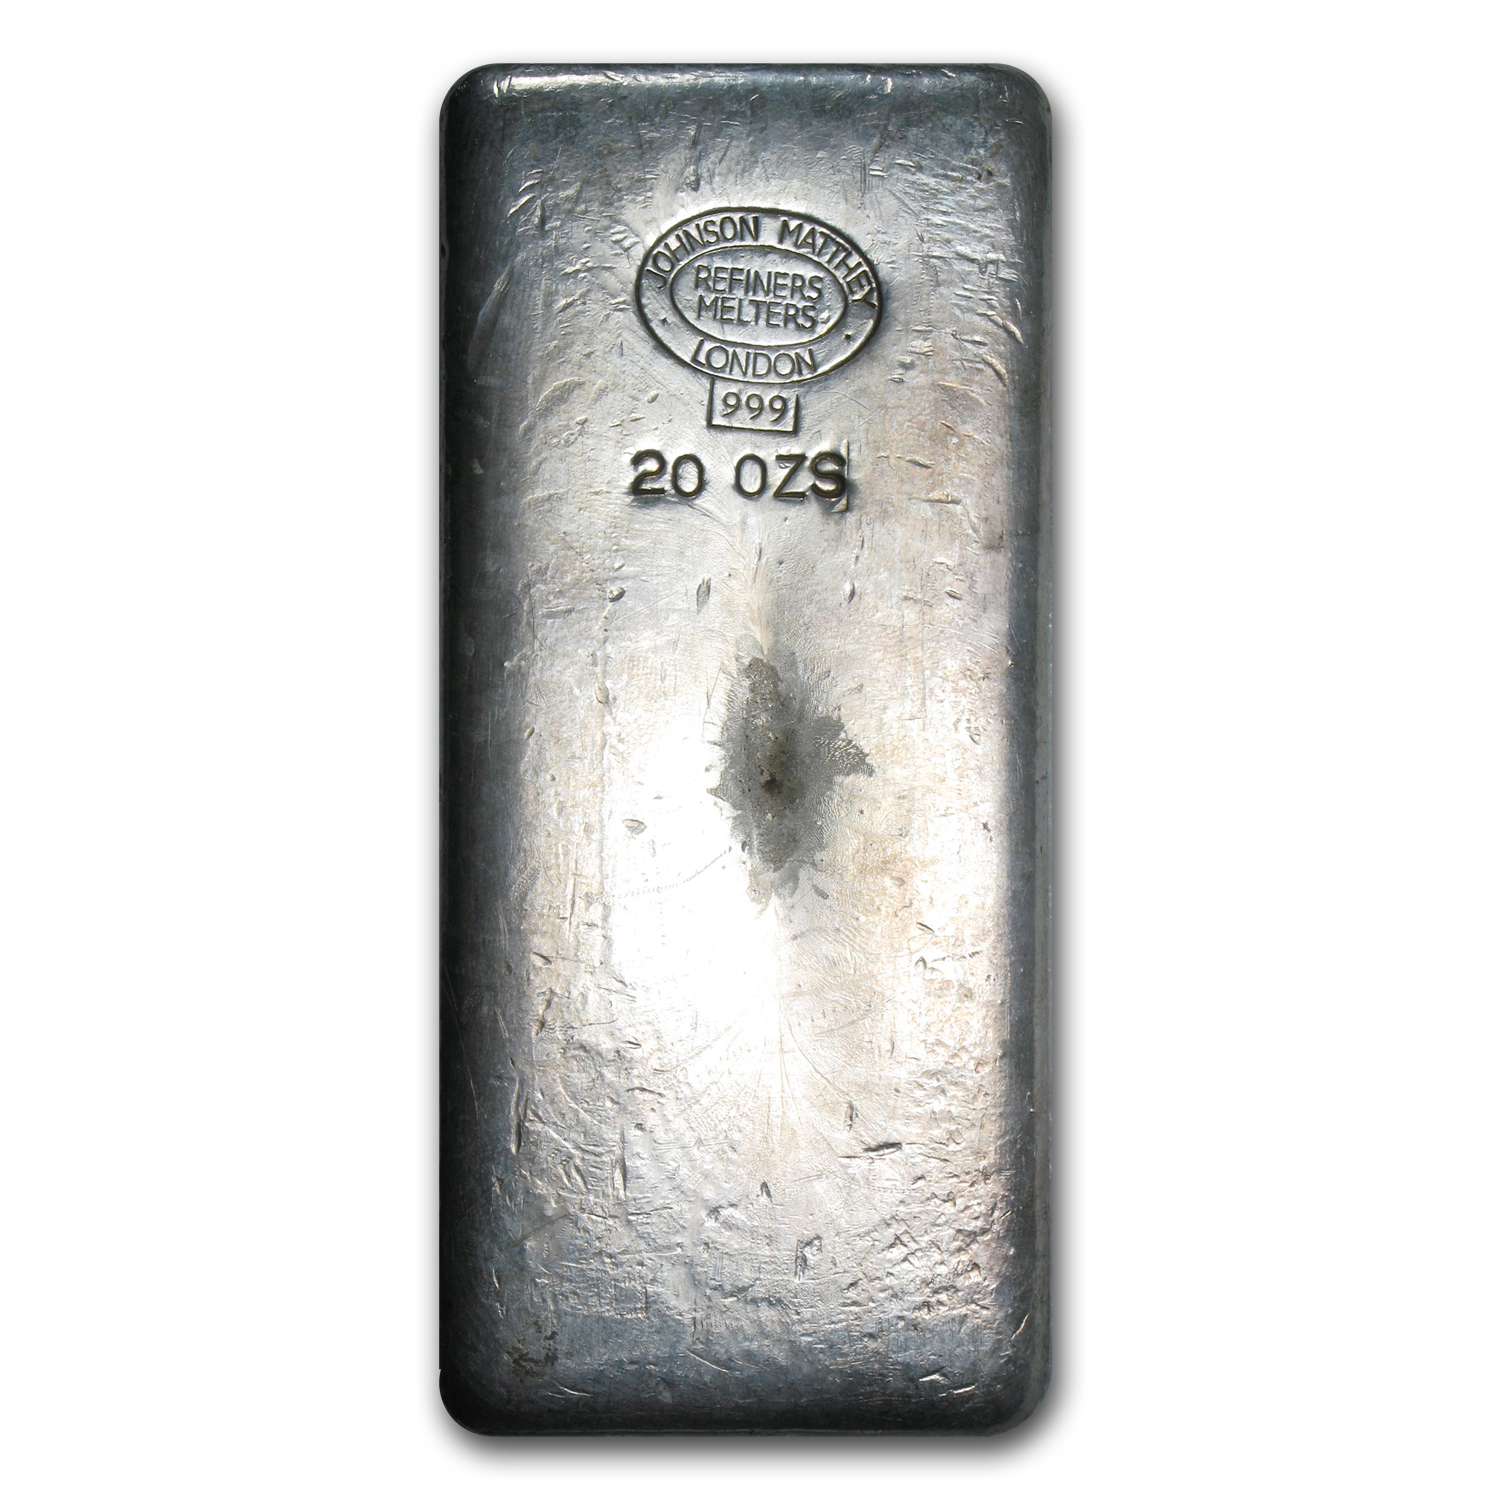 20 oz Silver Bars - Johnson Matthey (Vintage/London)